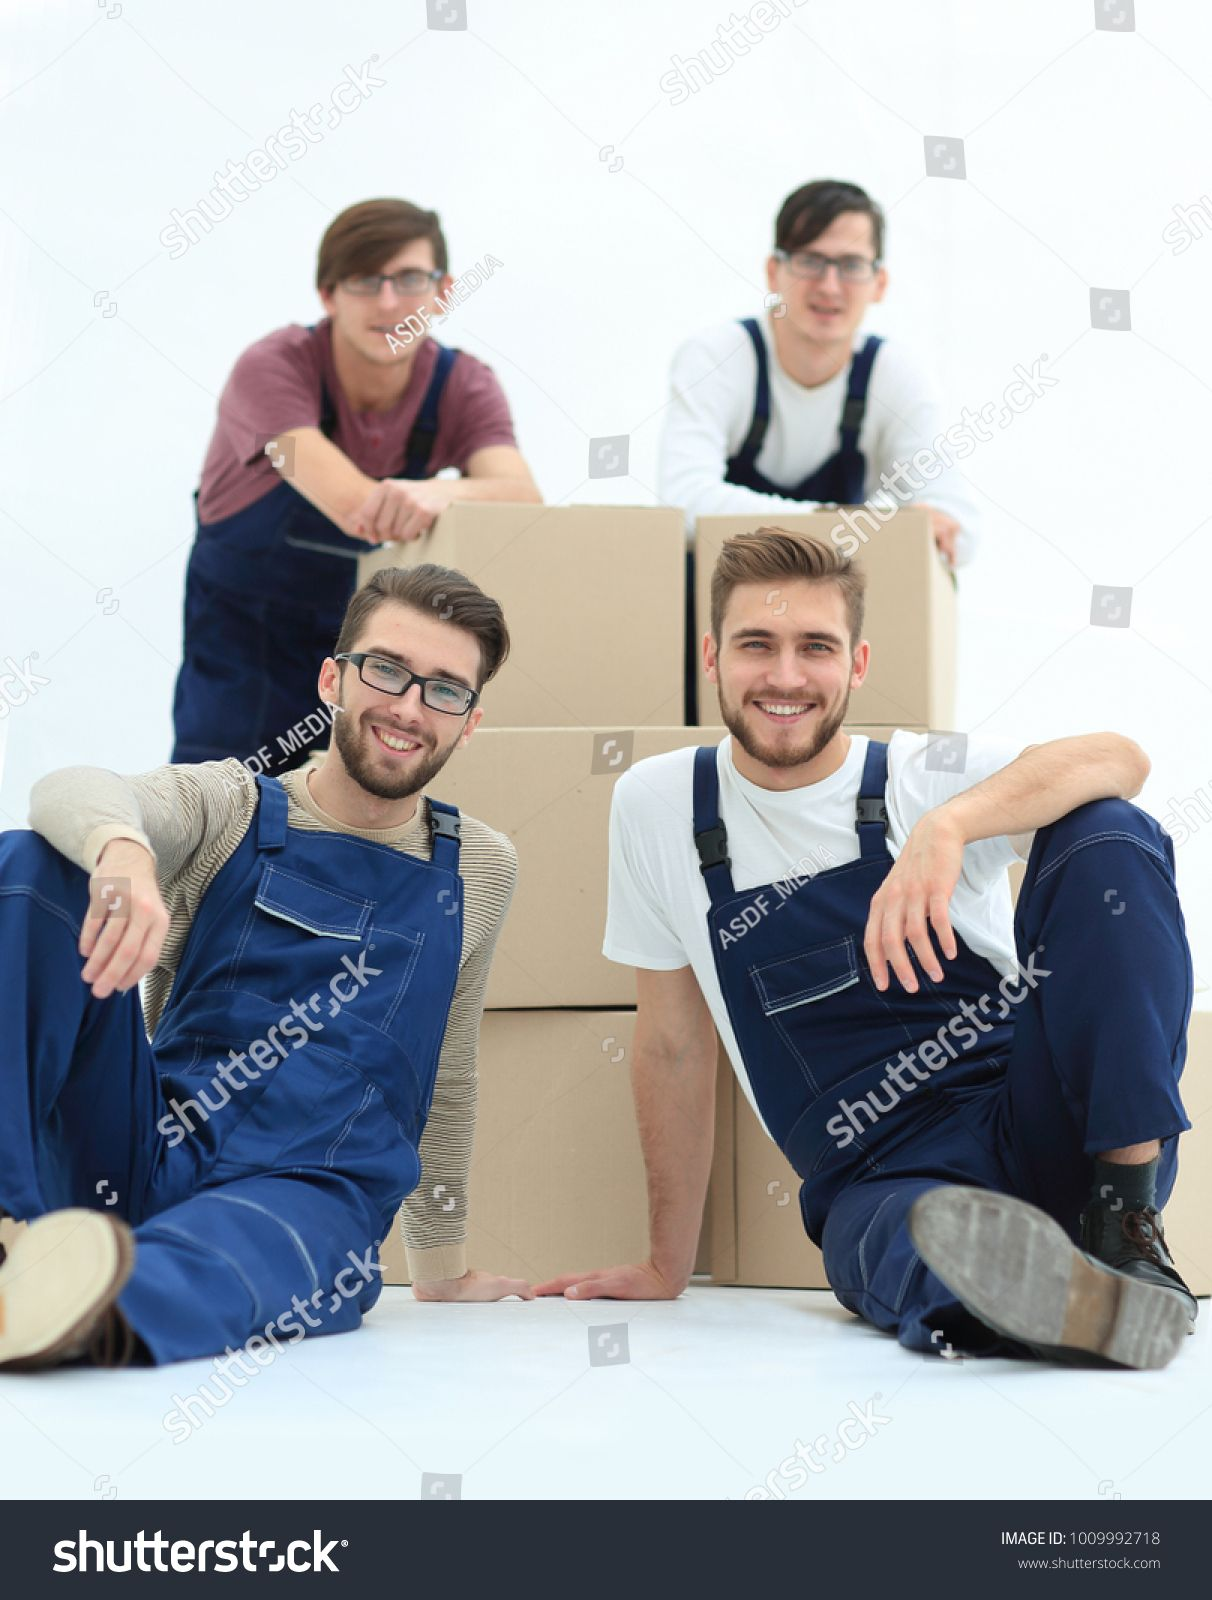 Satisfied and proud movers leaning on stack of boxes isolated on